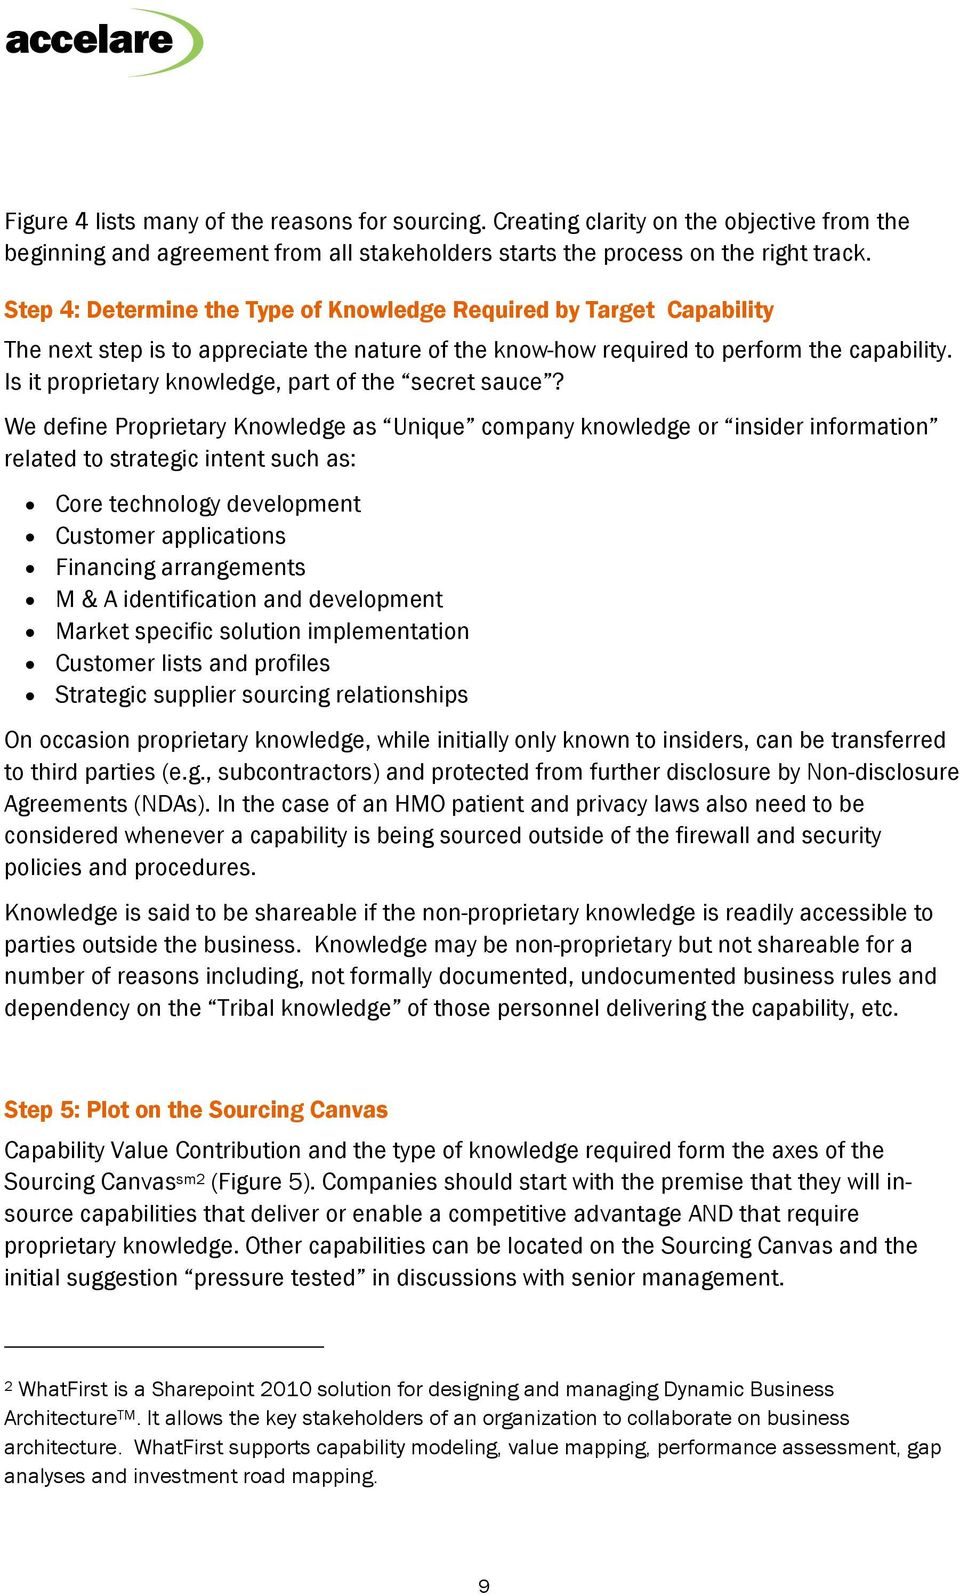 The Sourcing Canvas: A Strategic Approach to Sourcing